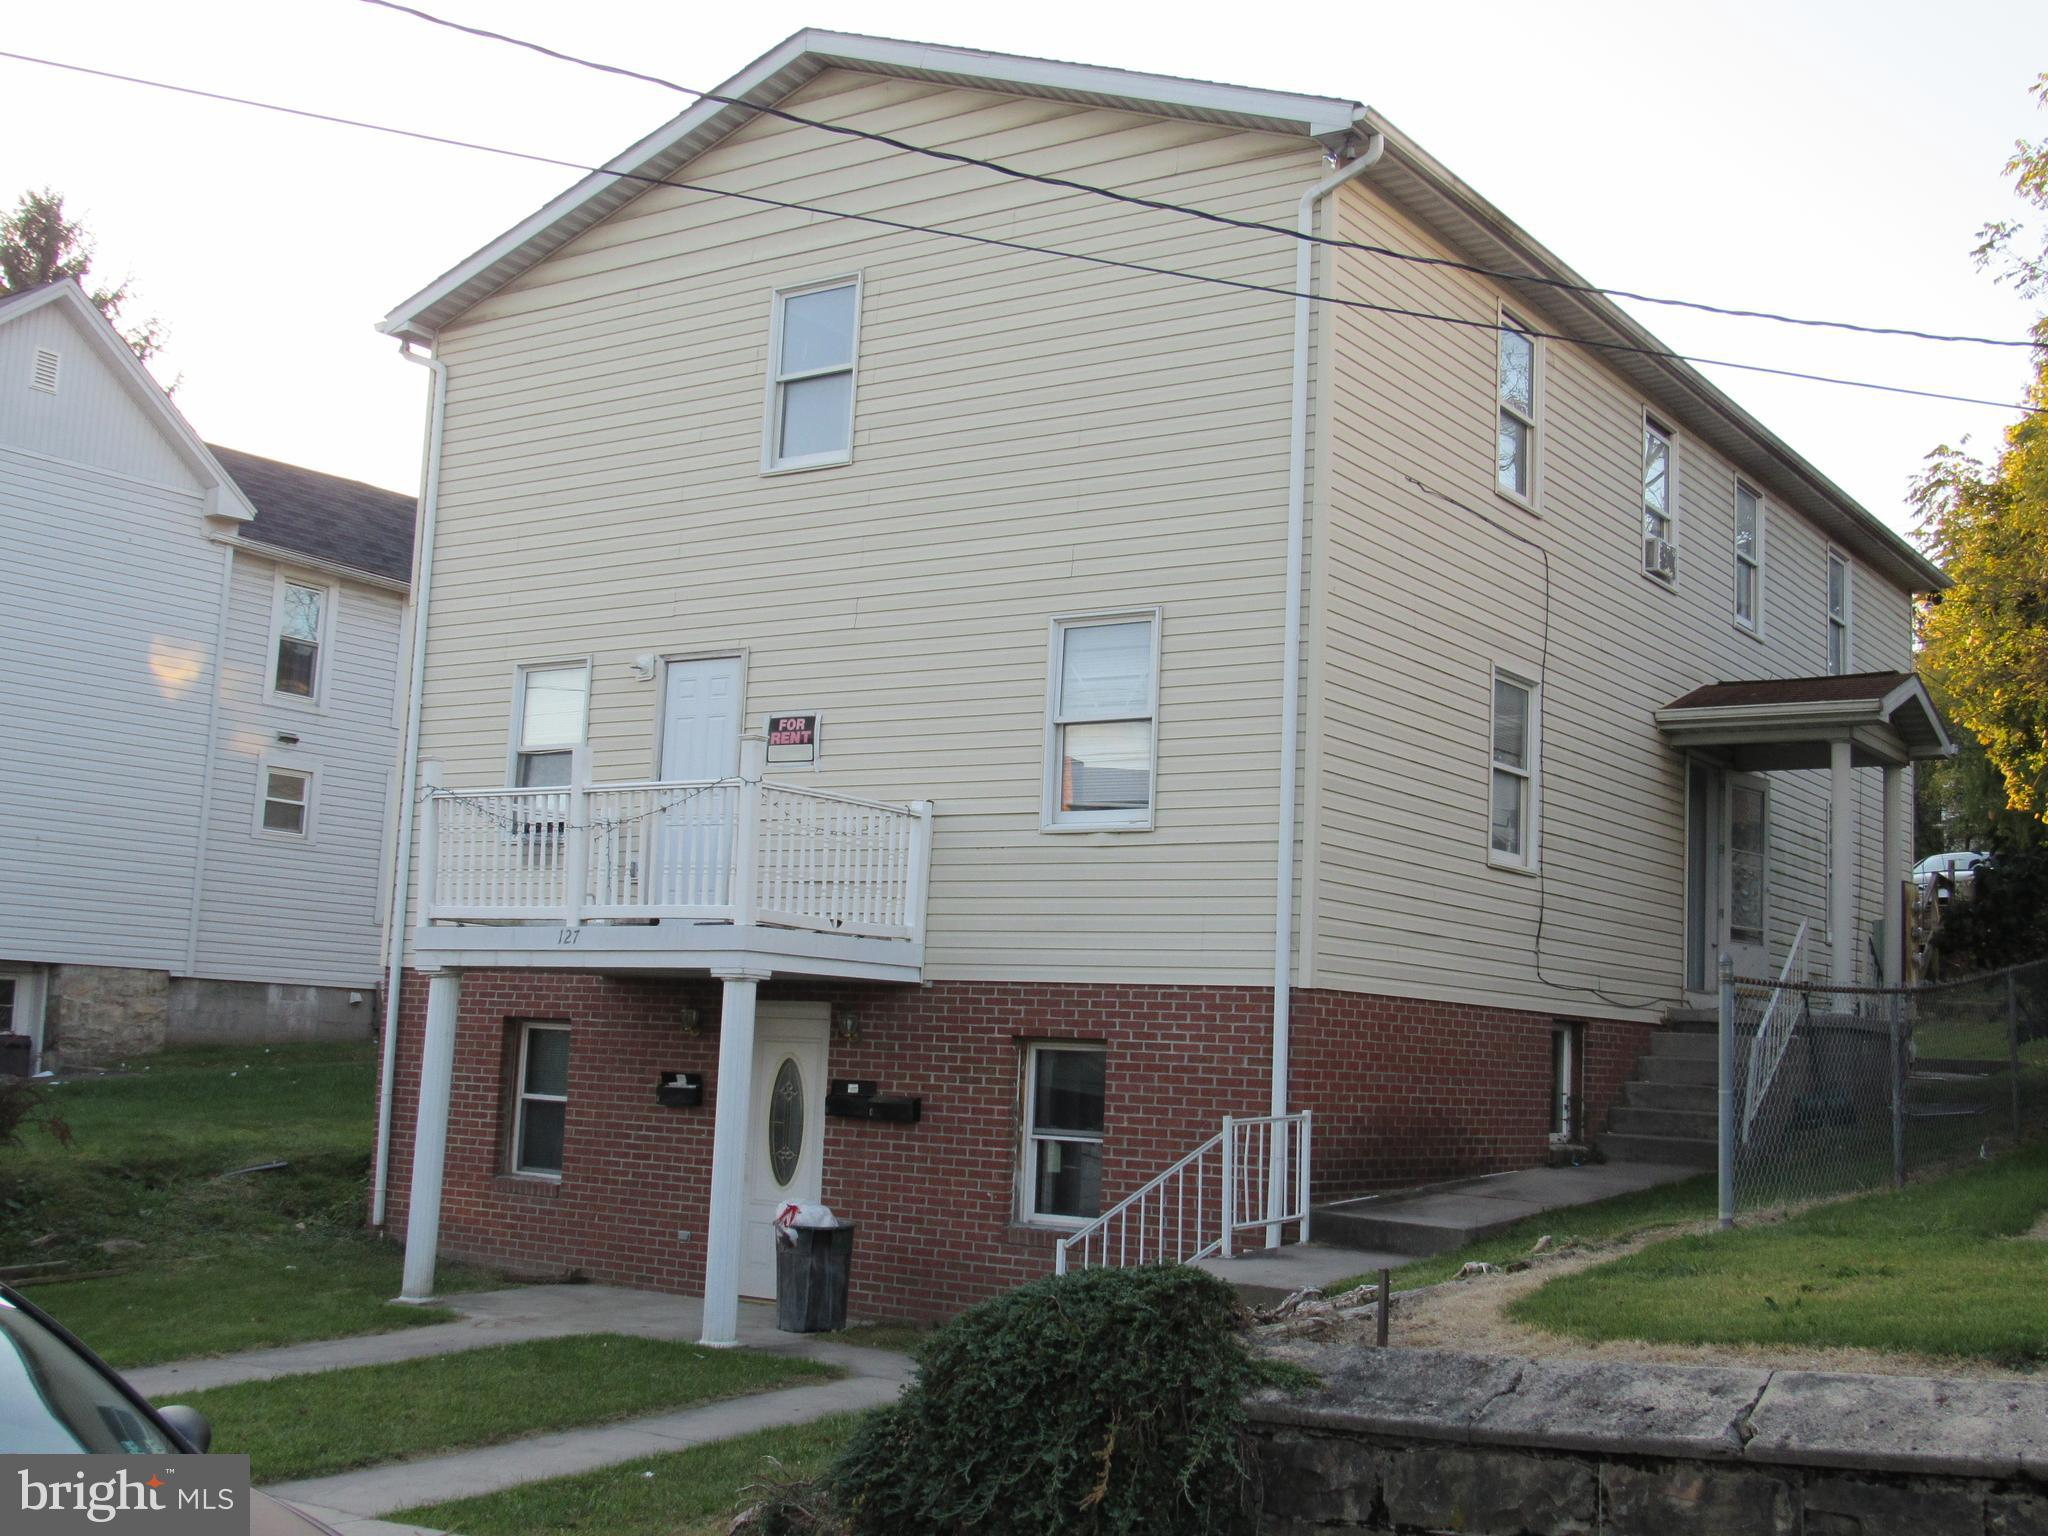 127 WOOD STREET, FROSTBURG, MD 21532